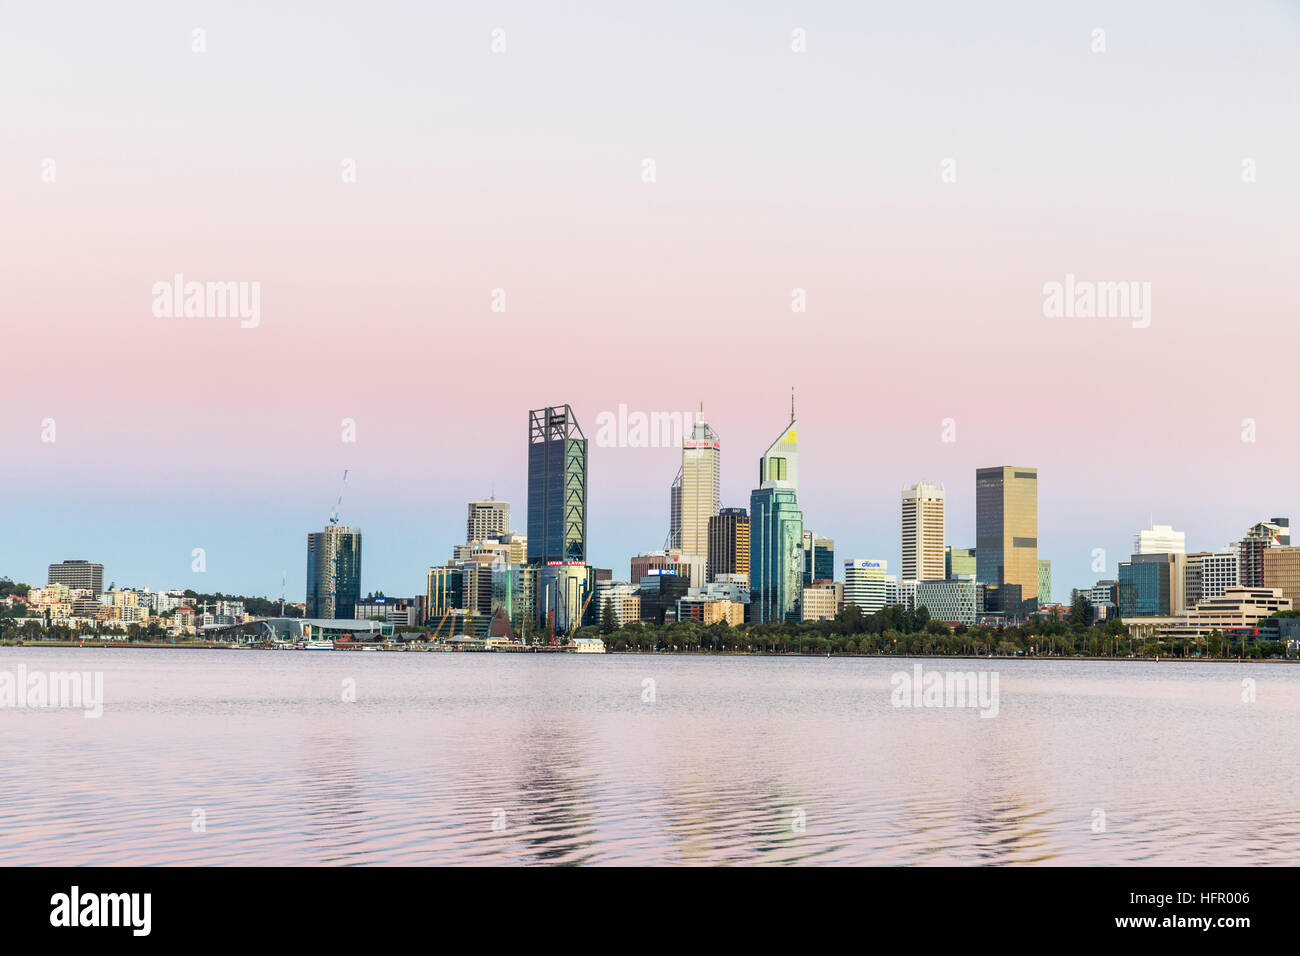 View across the Swan River to the city skyline from the South Perth foreshore, Perth, Western Australia, Australia Stock Photo